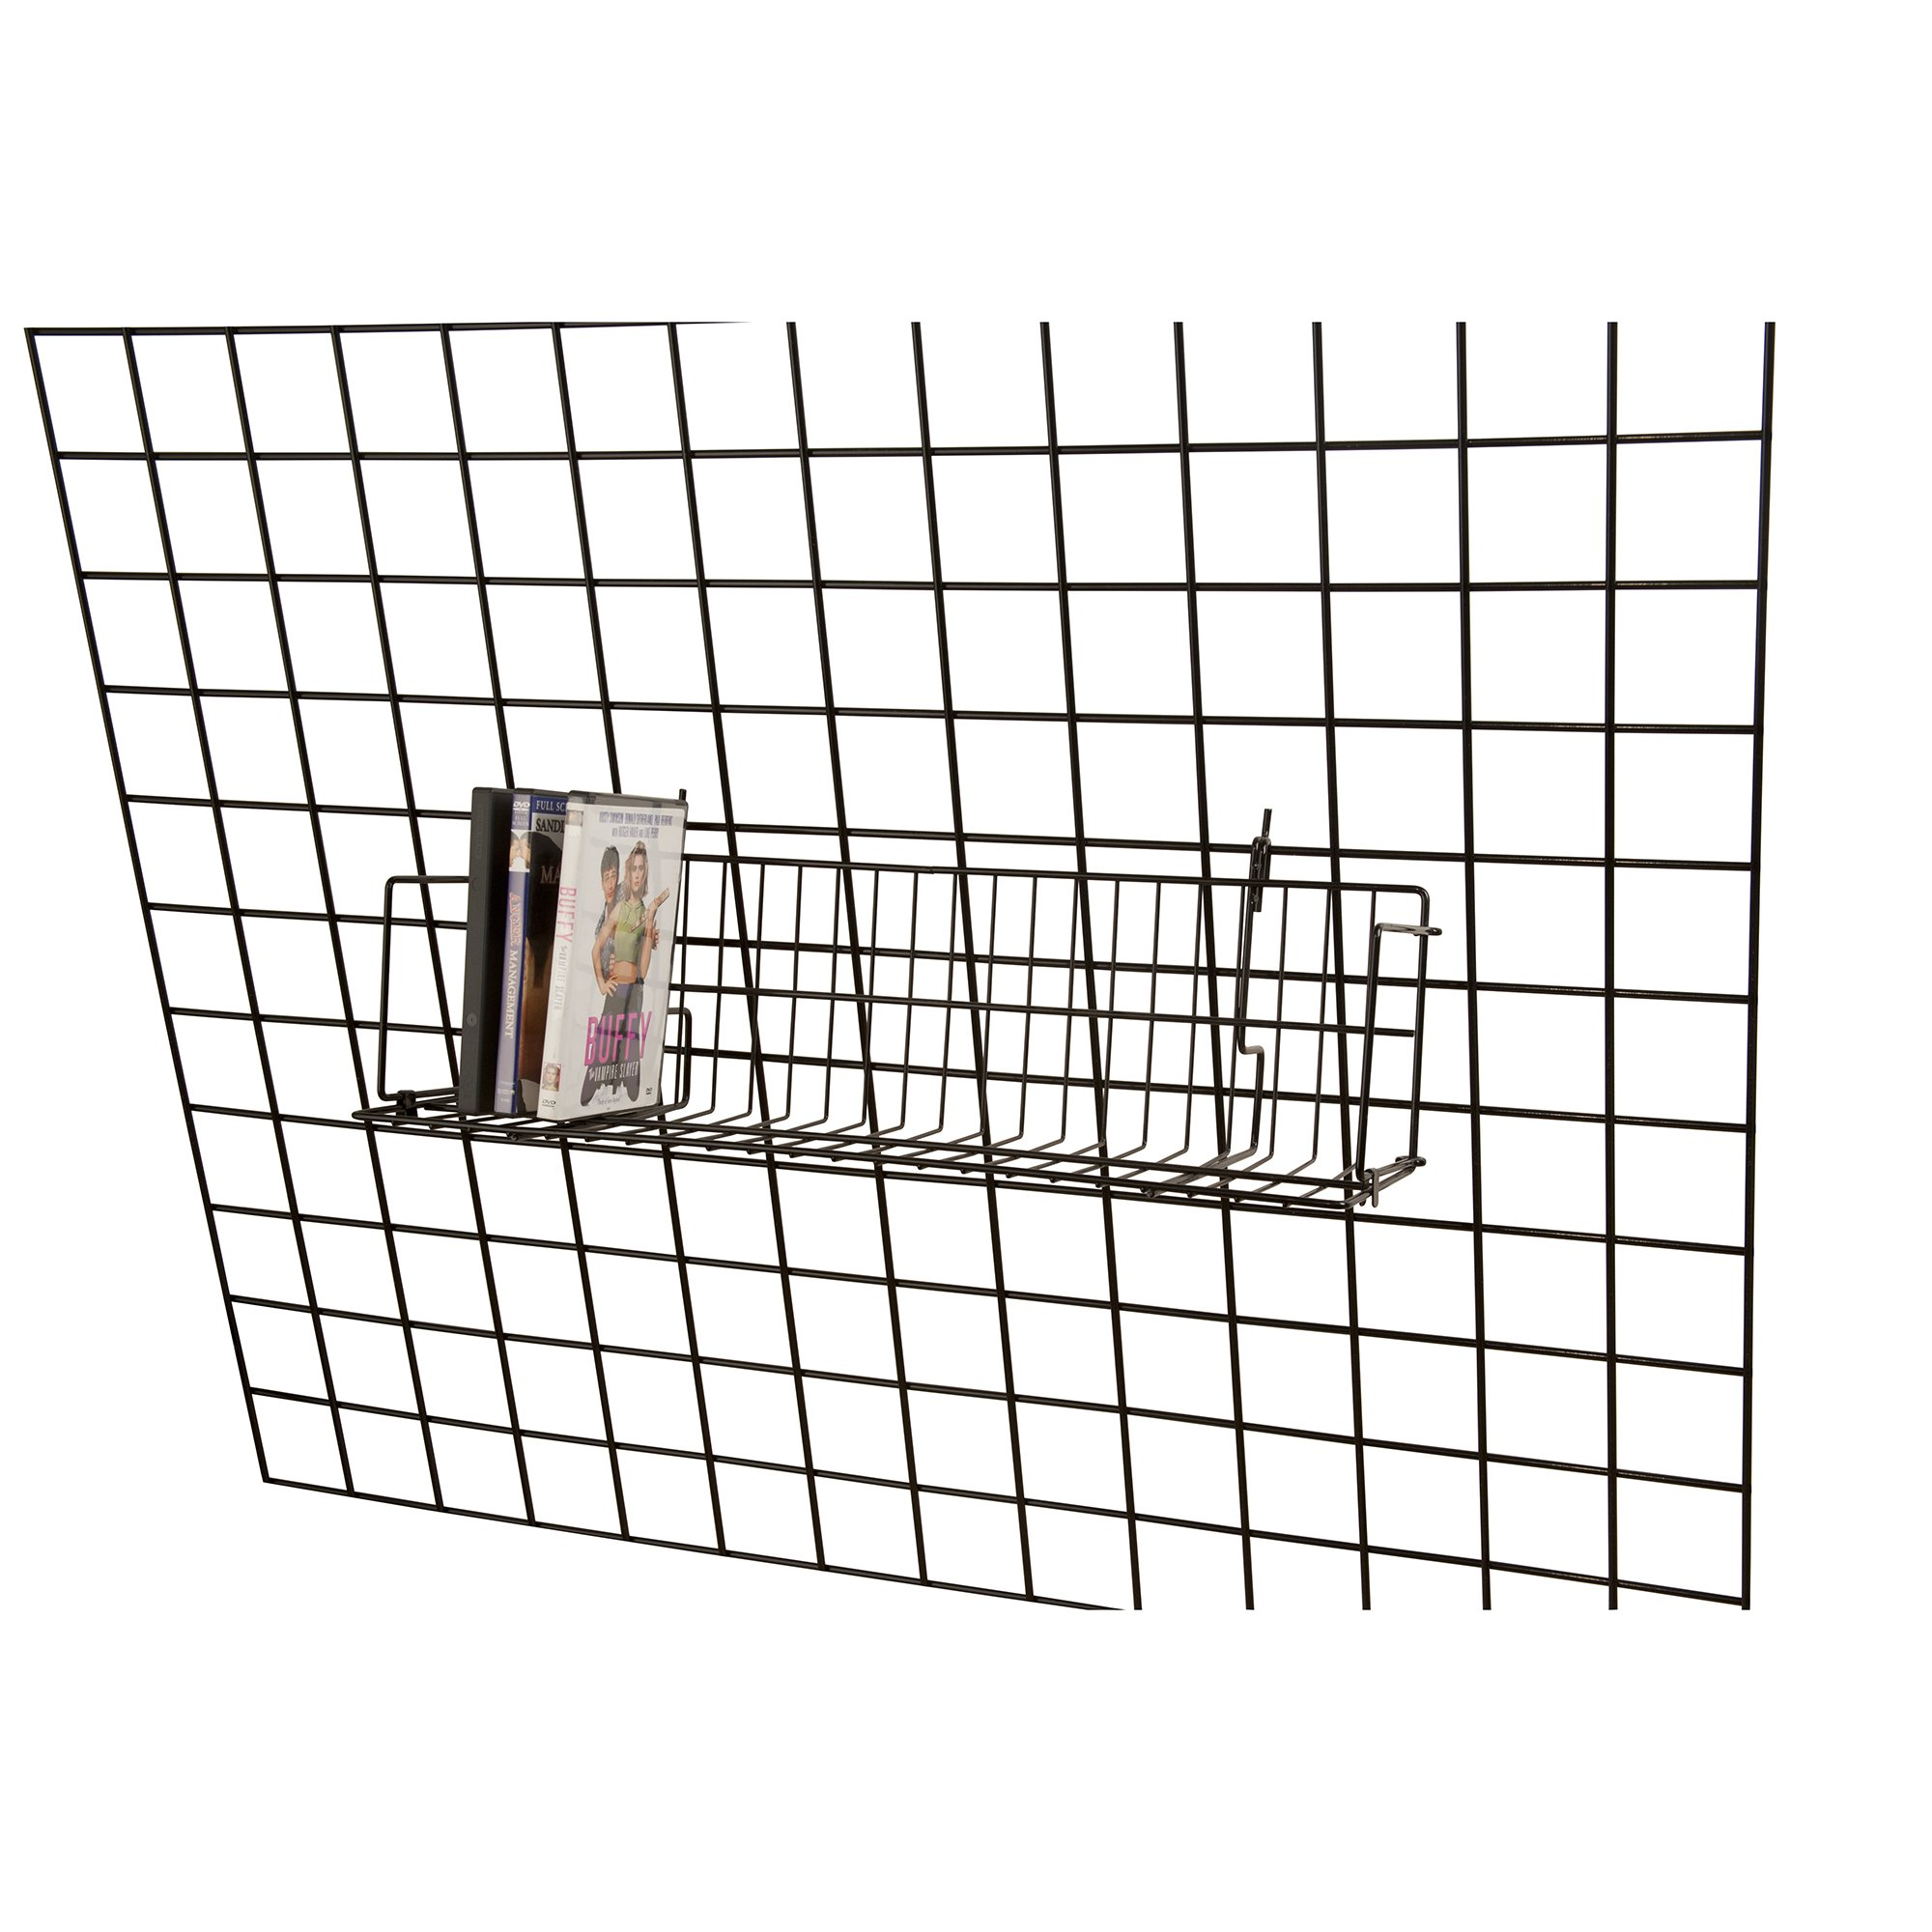 Lot of 6 Retail Black CD/DVD/Cassette Shelves For Grid 24''L x 6''D x 6½''H